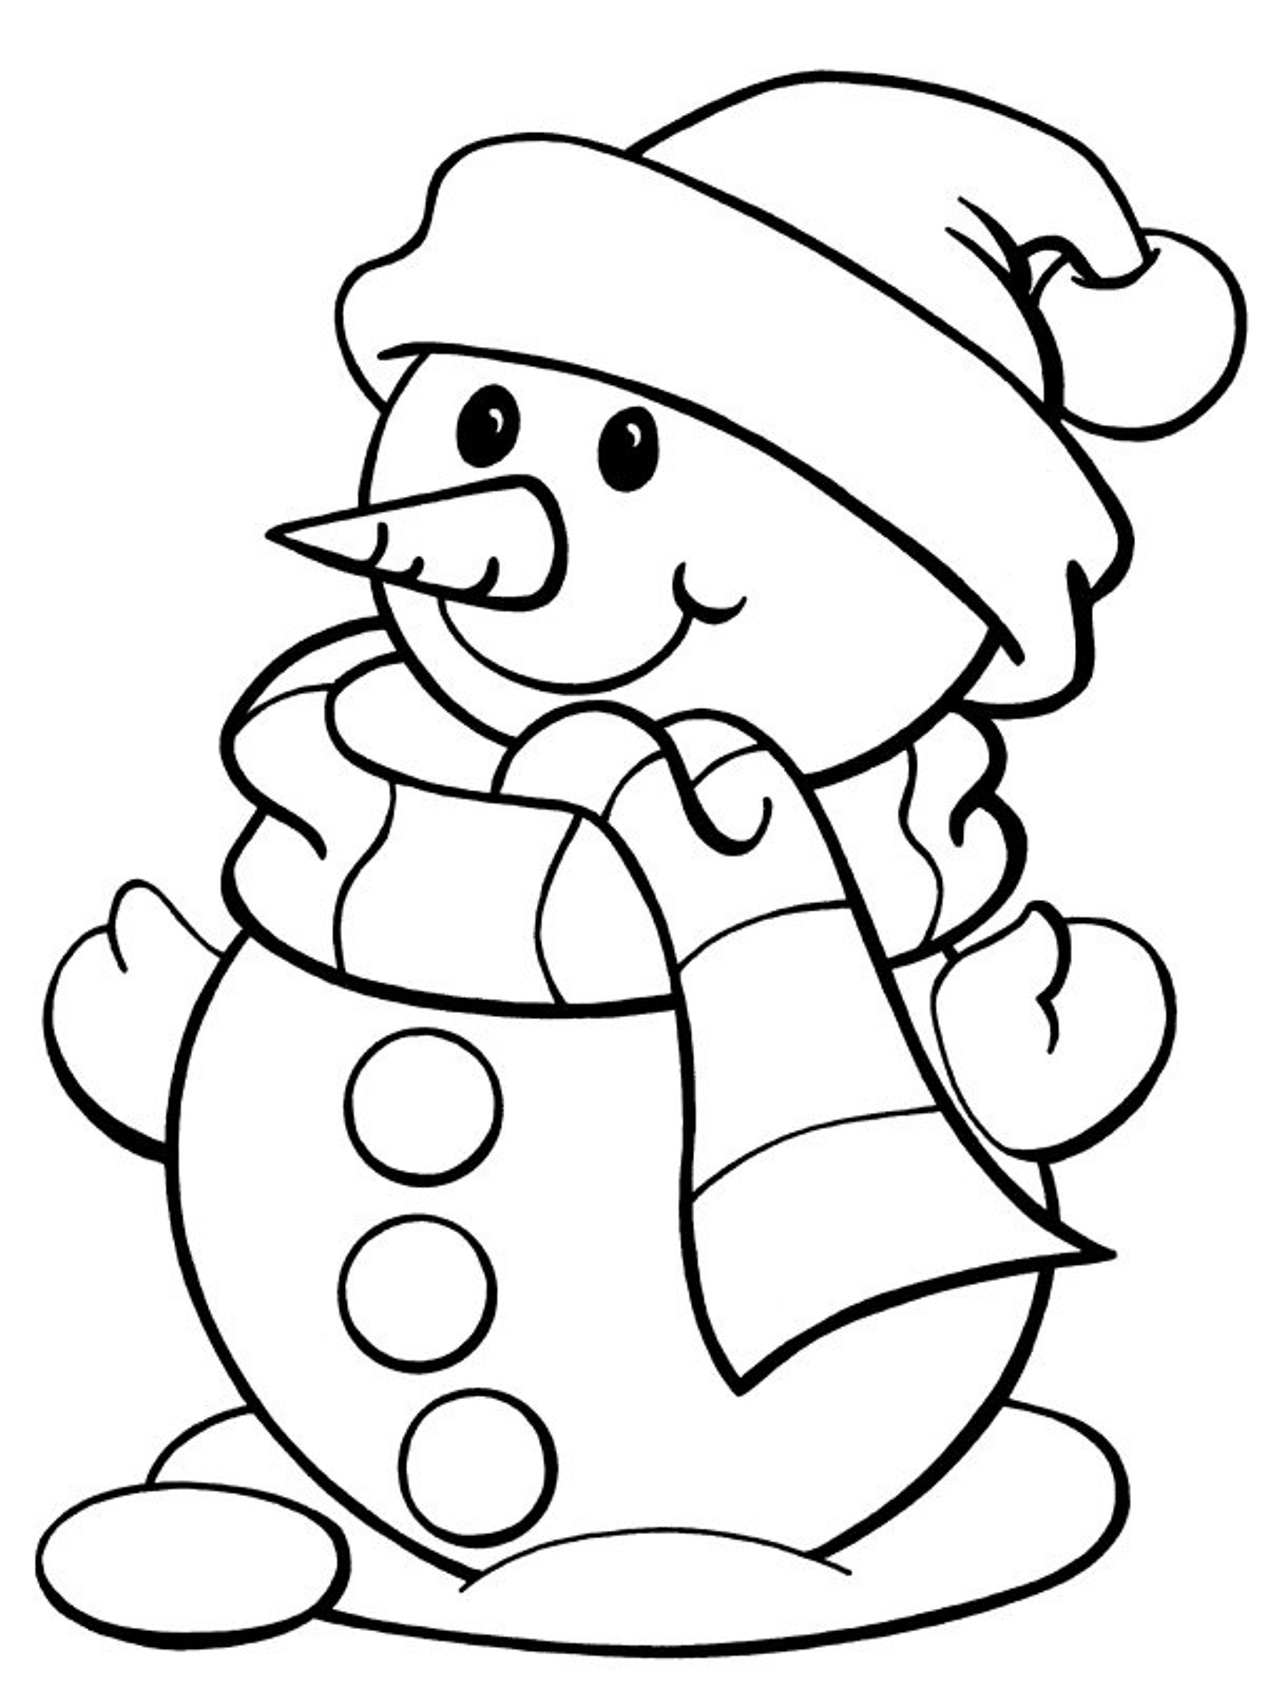 1268x1688 Kids Winter Coloring Pages Winter Coloring Pages Pdf For Kids